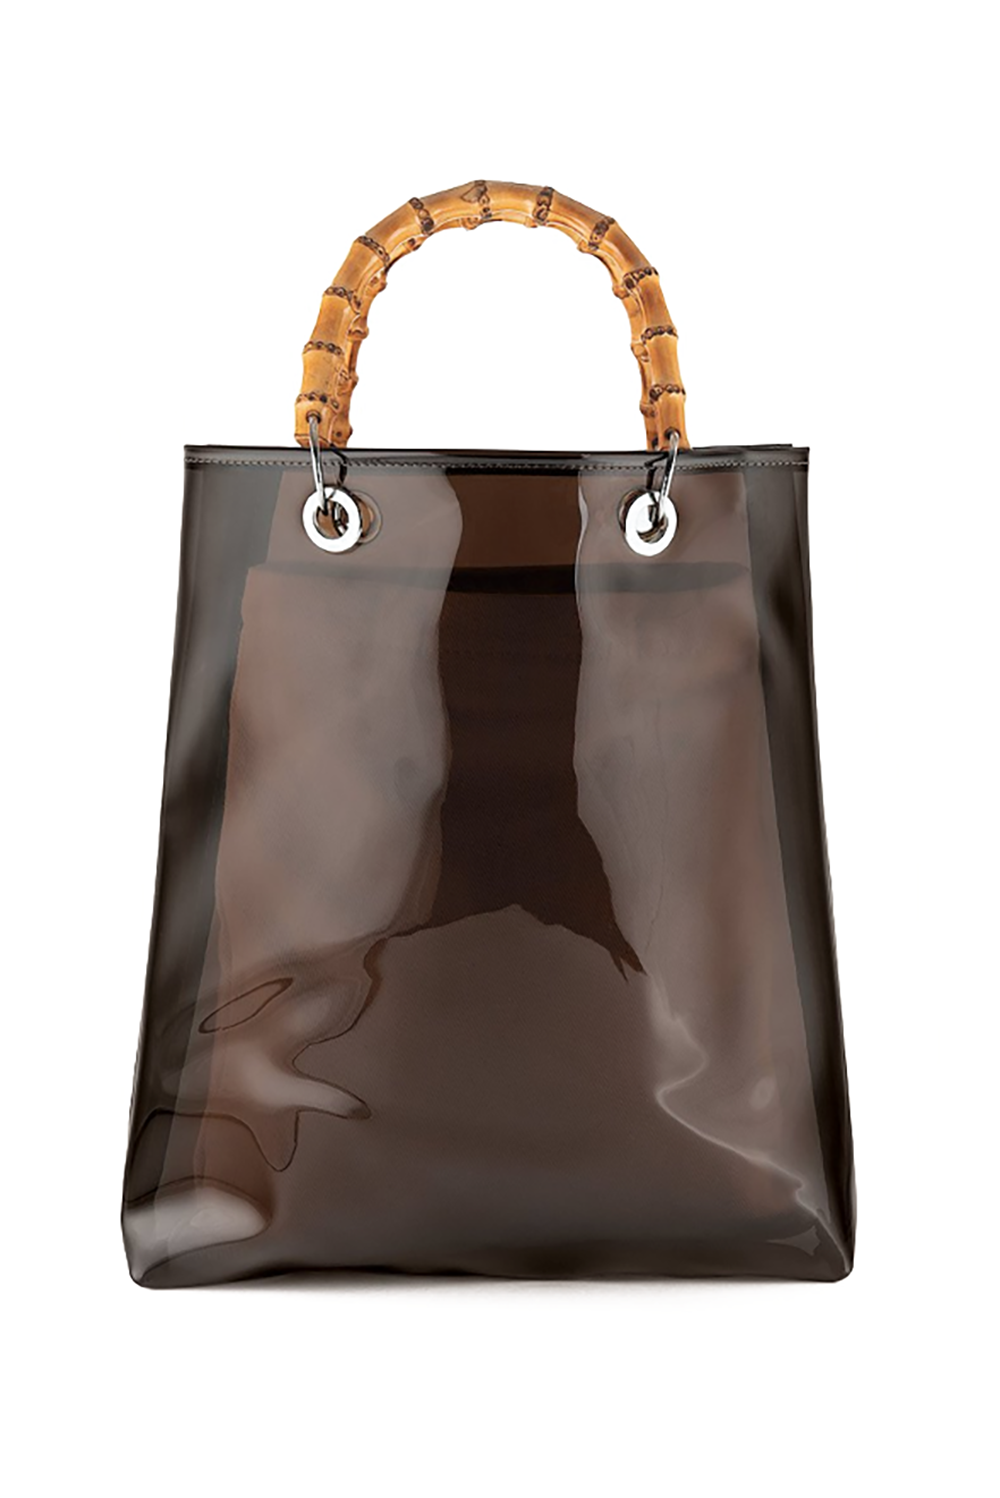 A Little Staycation Genuine People $220.00 SHOP IT Don't wait to use your vacation days to whip this baby out. For something a little different, Genuine People's clear tote with bamboo handles will let your co-workers know you have great taste and you're all about that work-life balance.